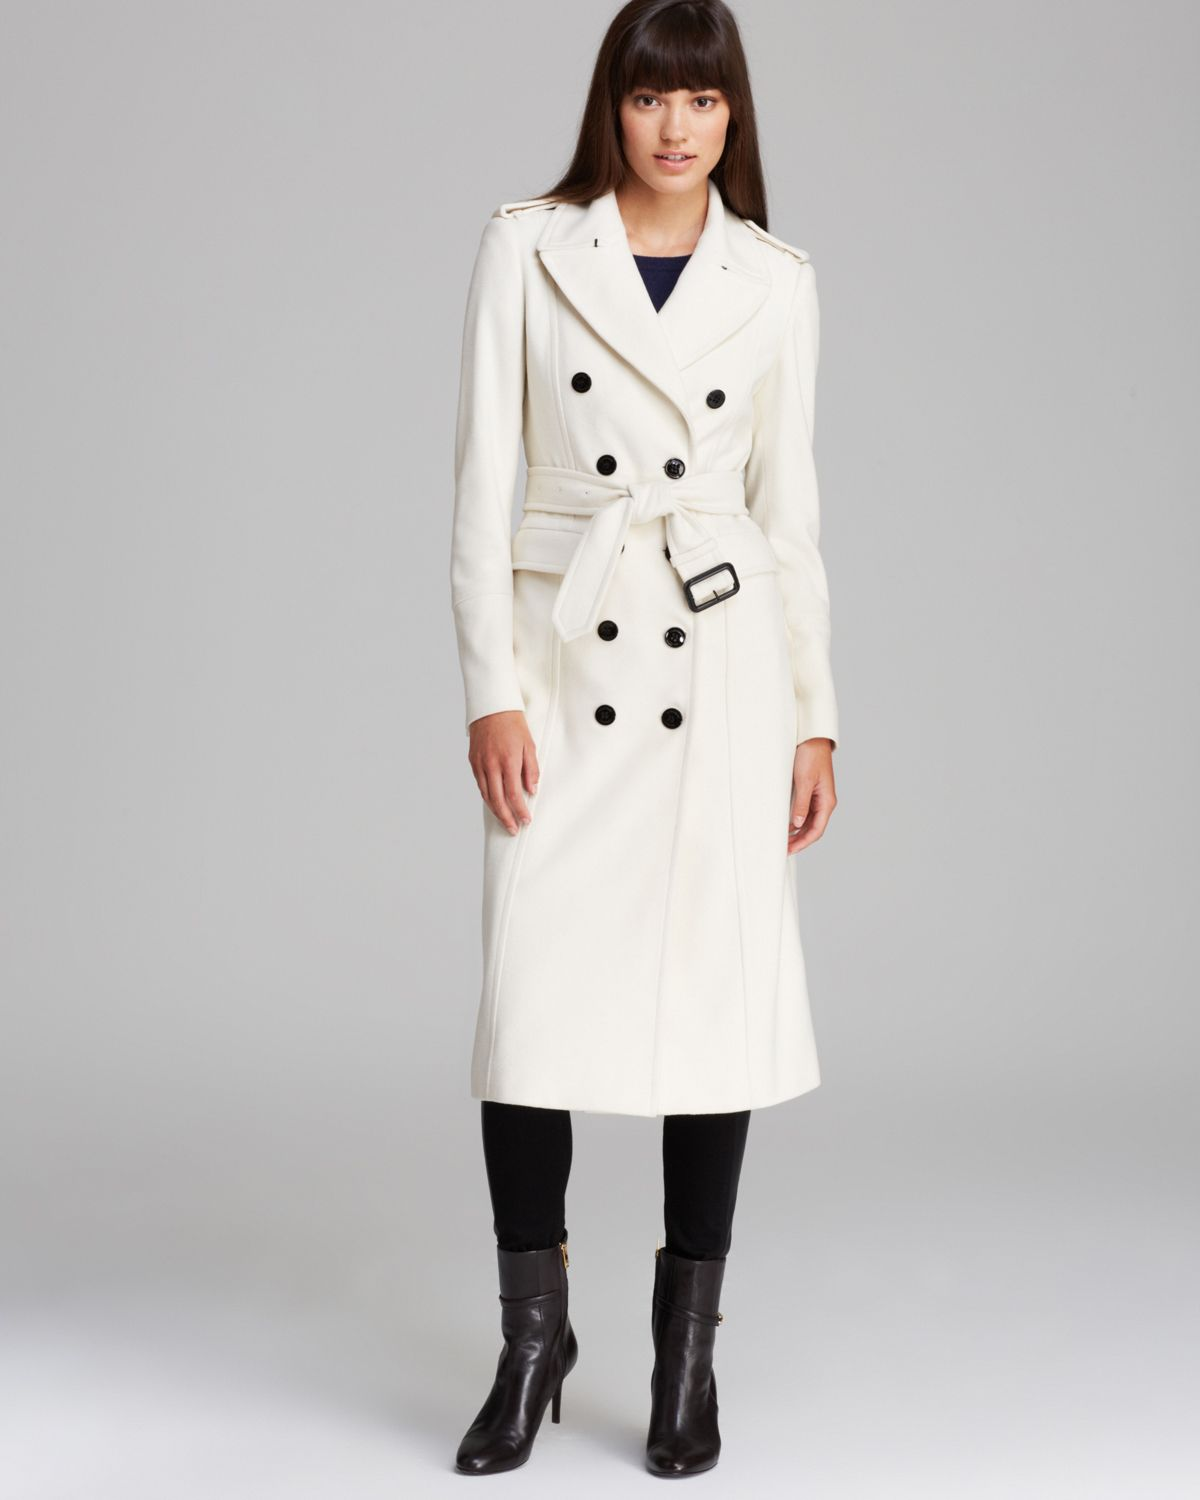 Winter white wool trench coat – Modern fashion jacket photo blog